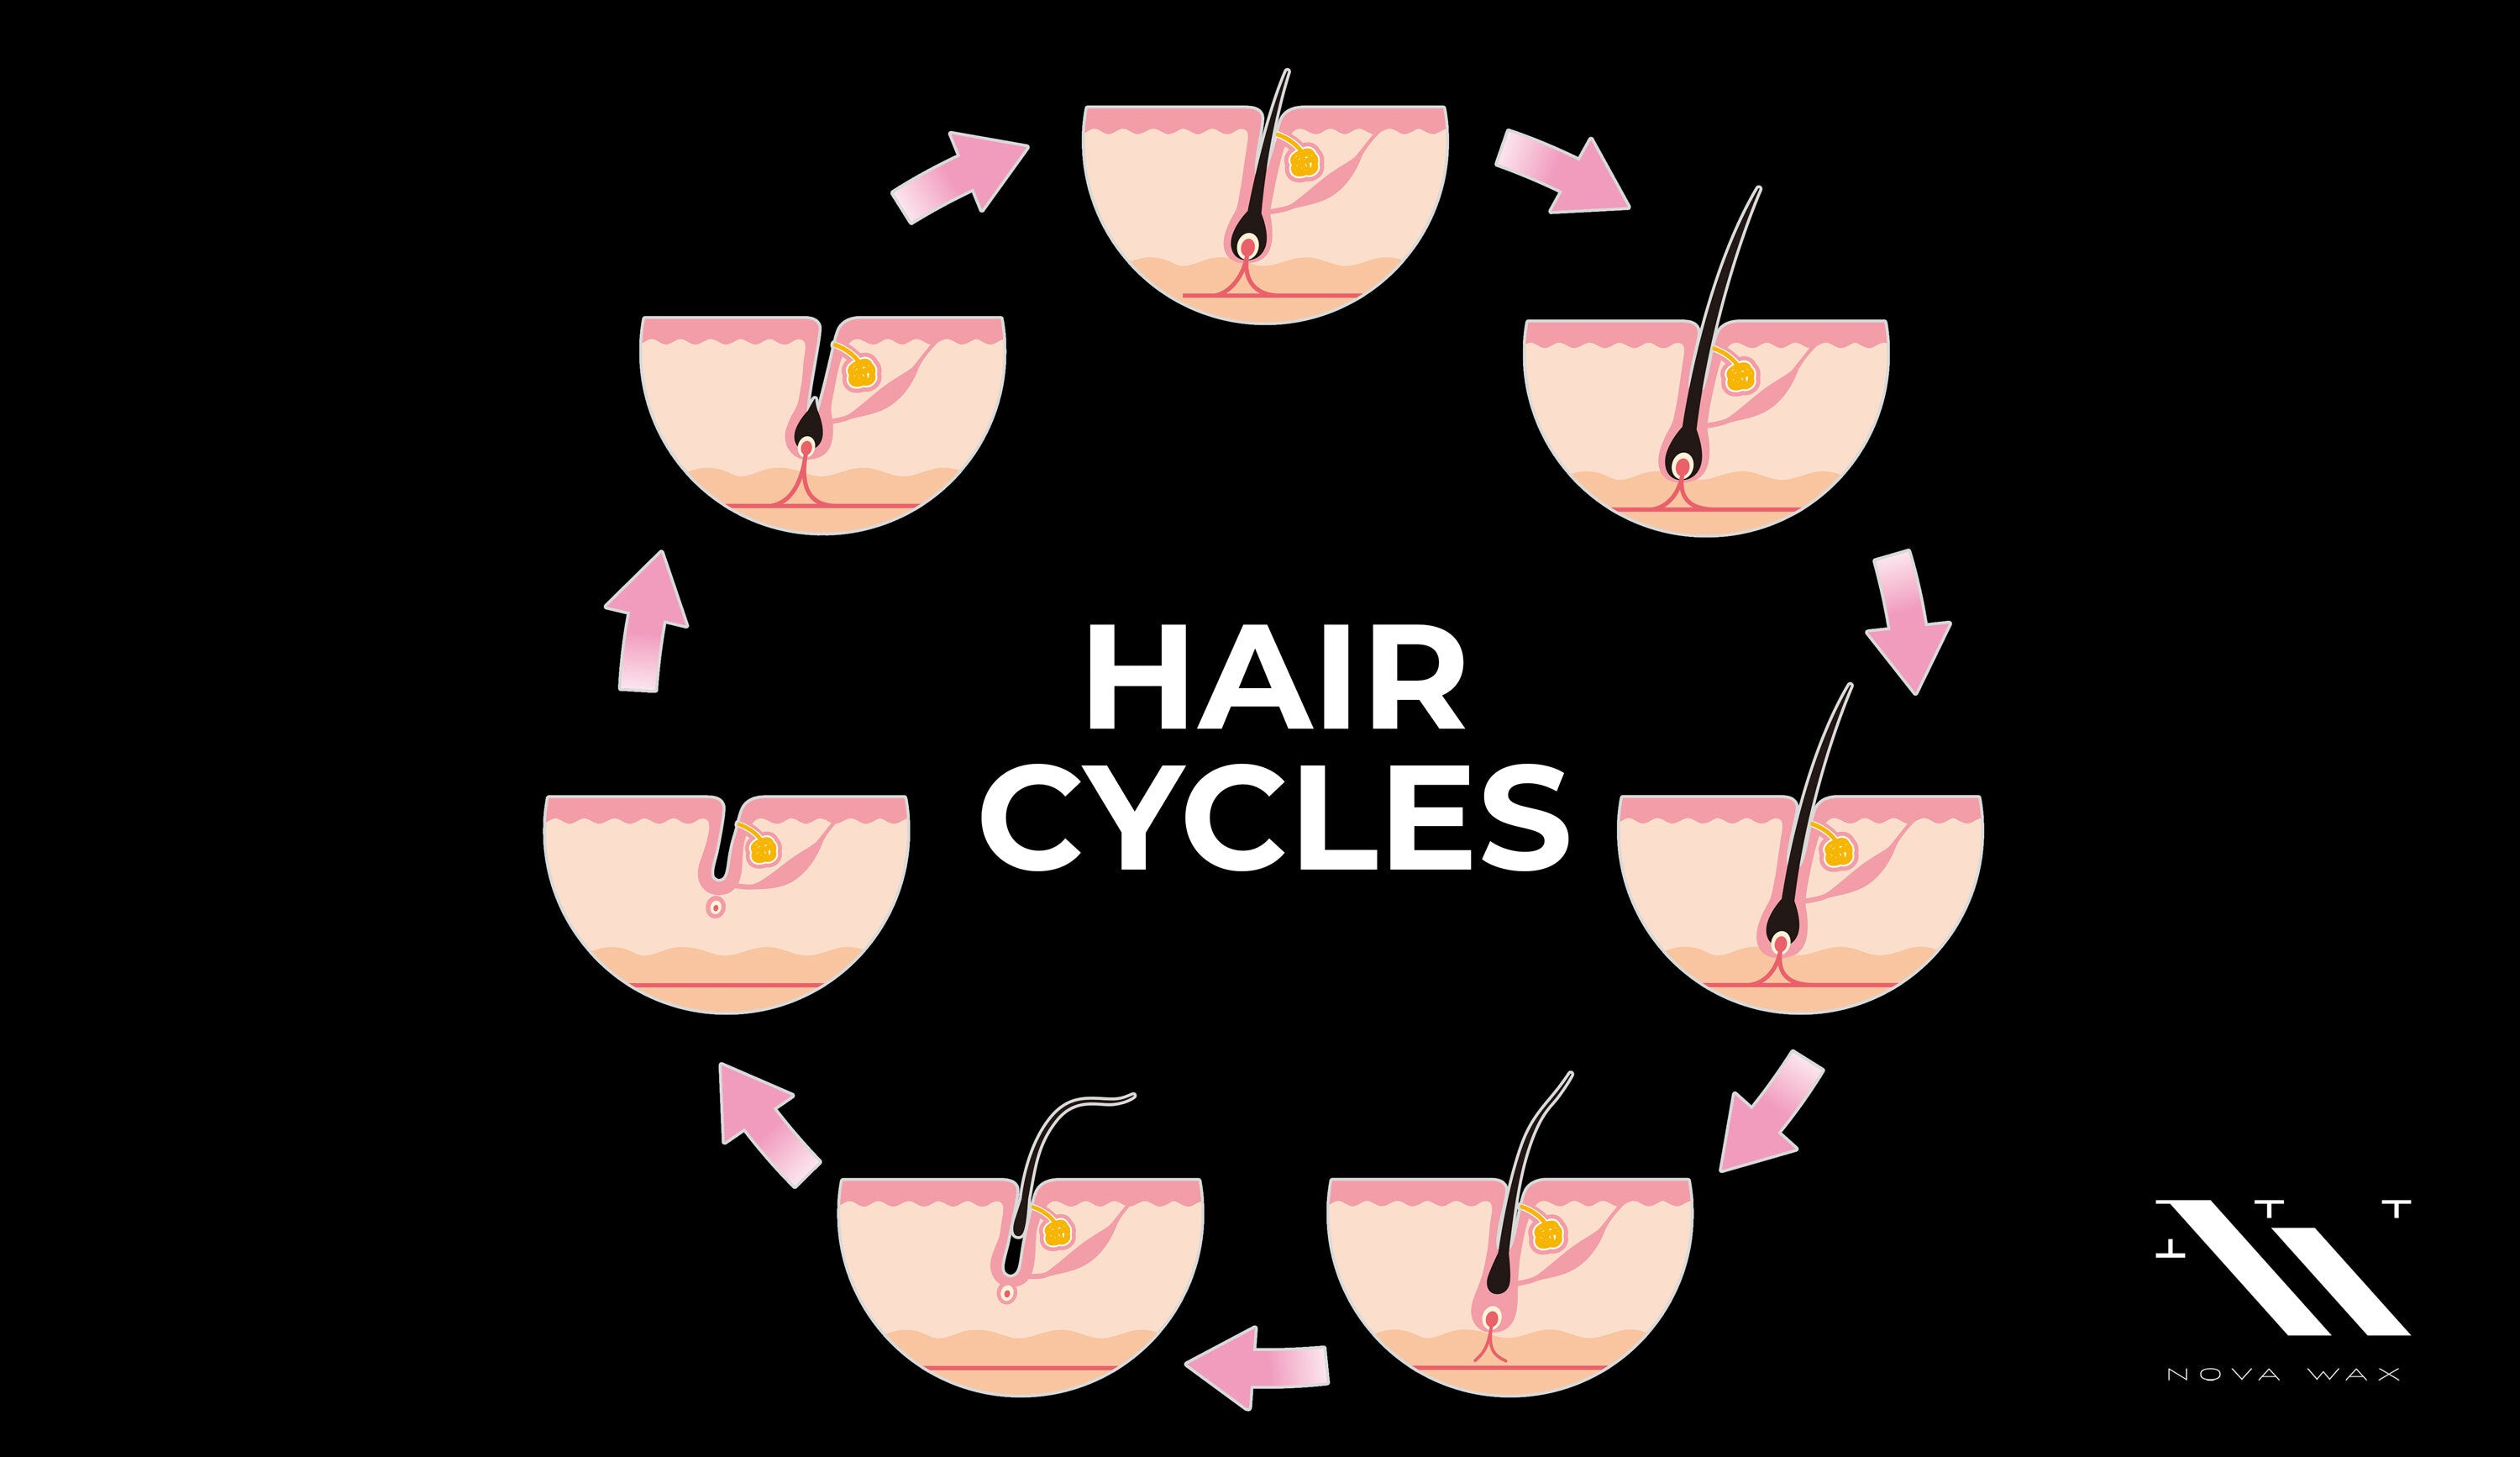 Hair Cycles